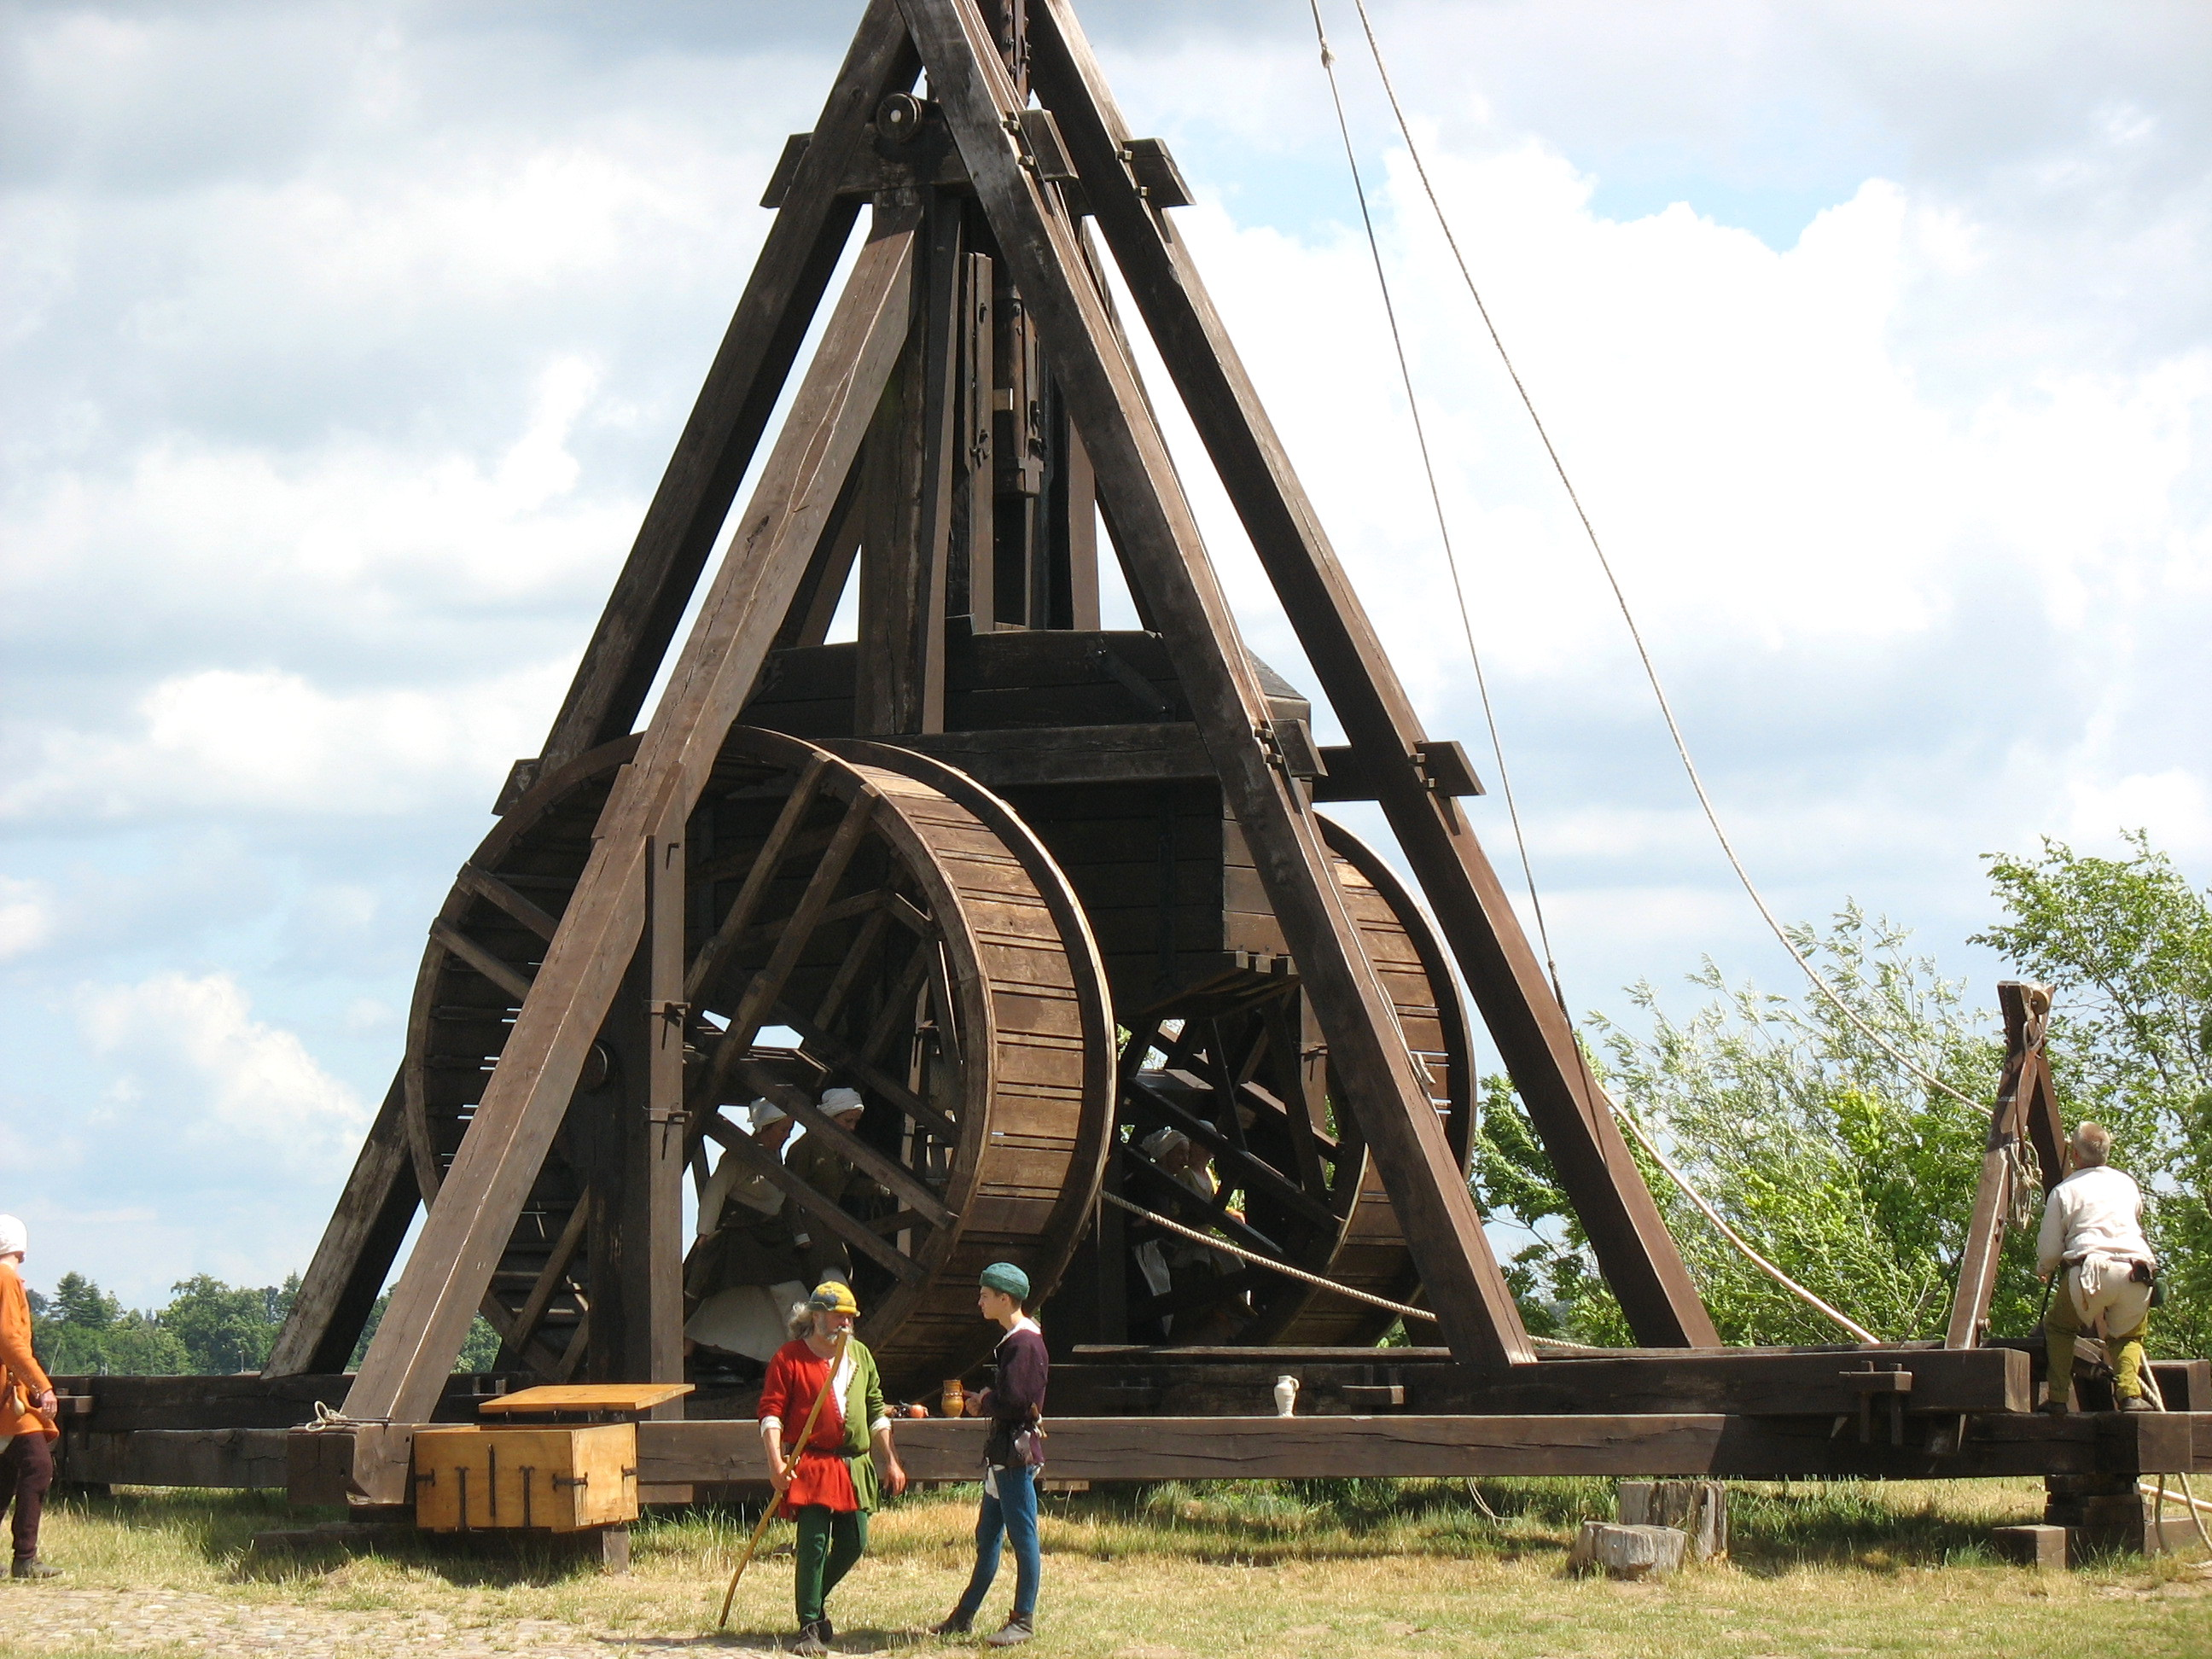 a history of trebuchet a war machine The trebuchet - one of the most powerful medieval siege weapons discover tebuchet history and how to build them from scratch or by using trebuchet plans.